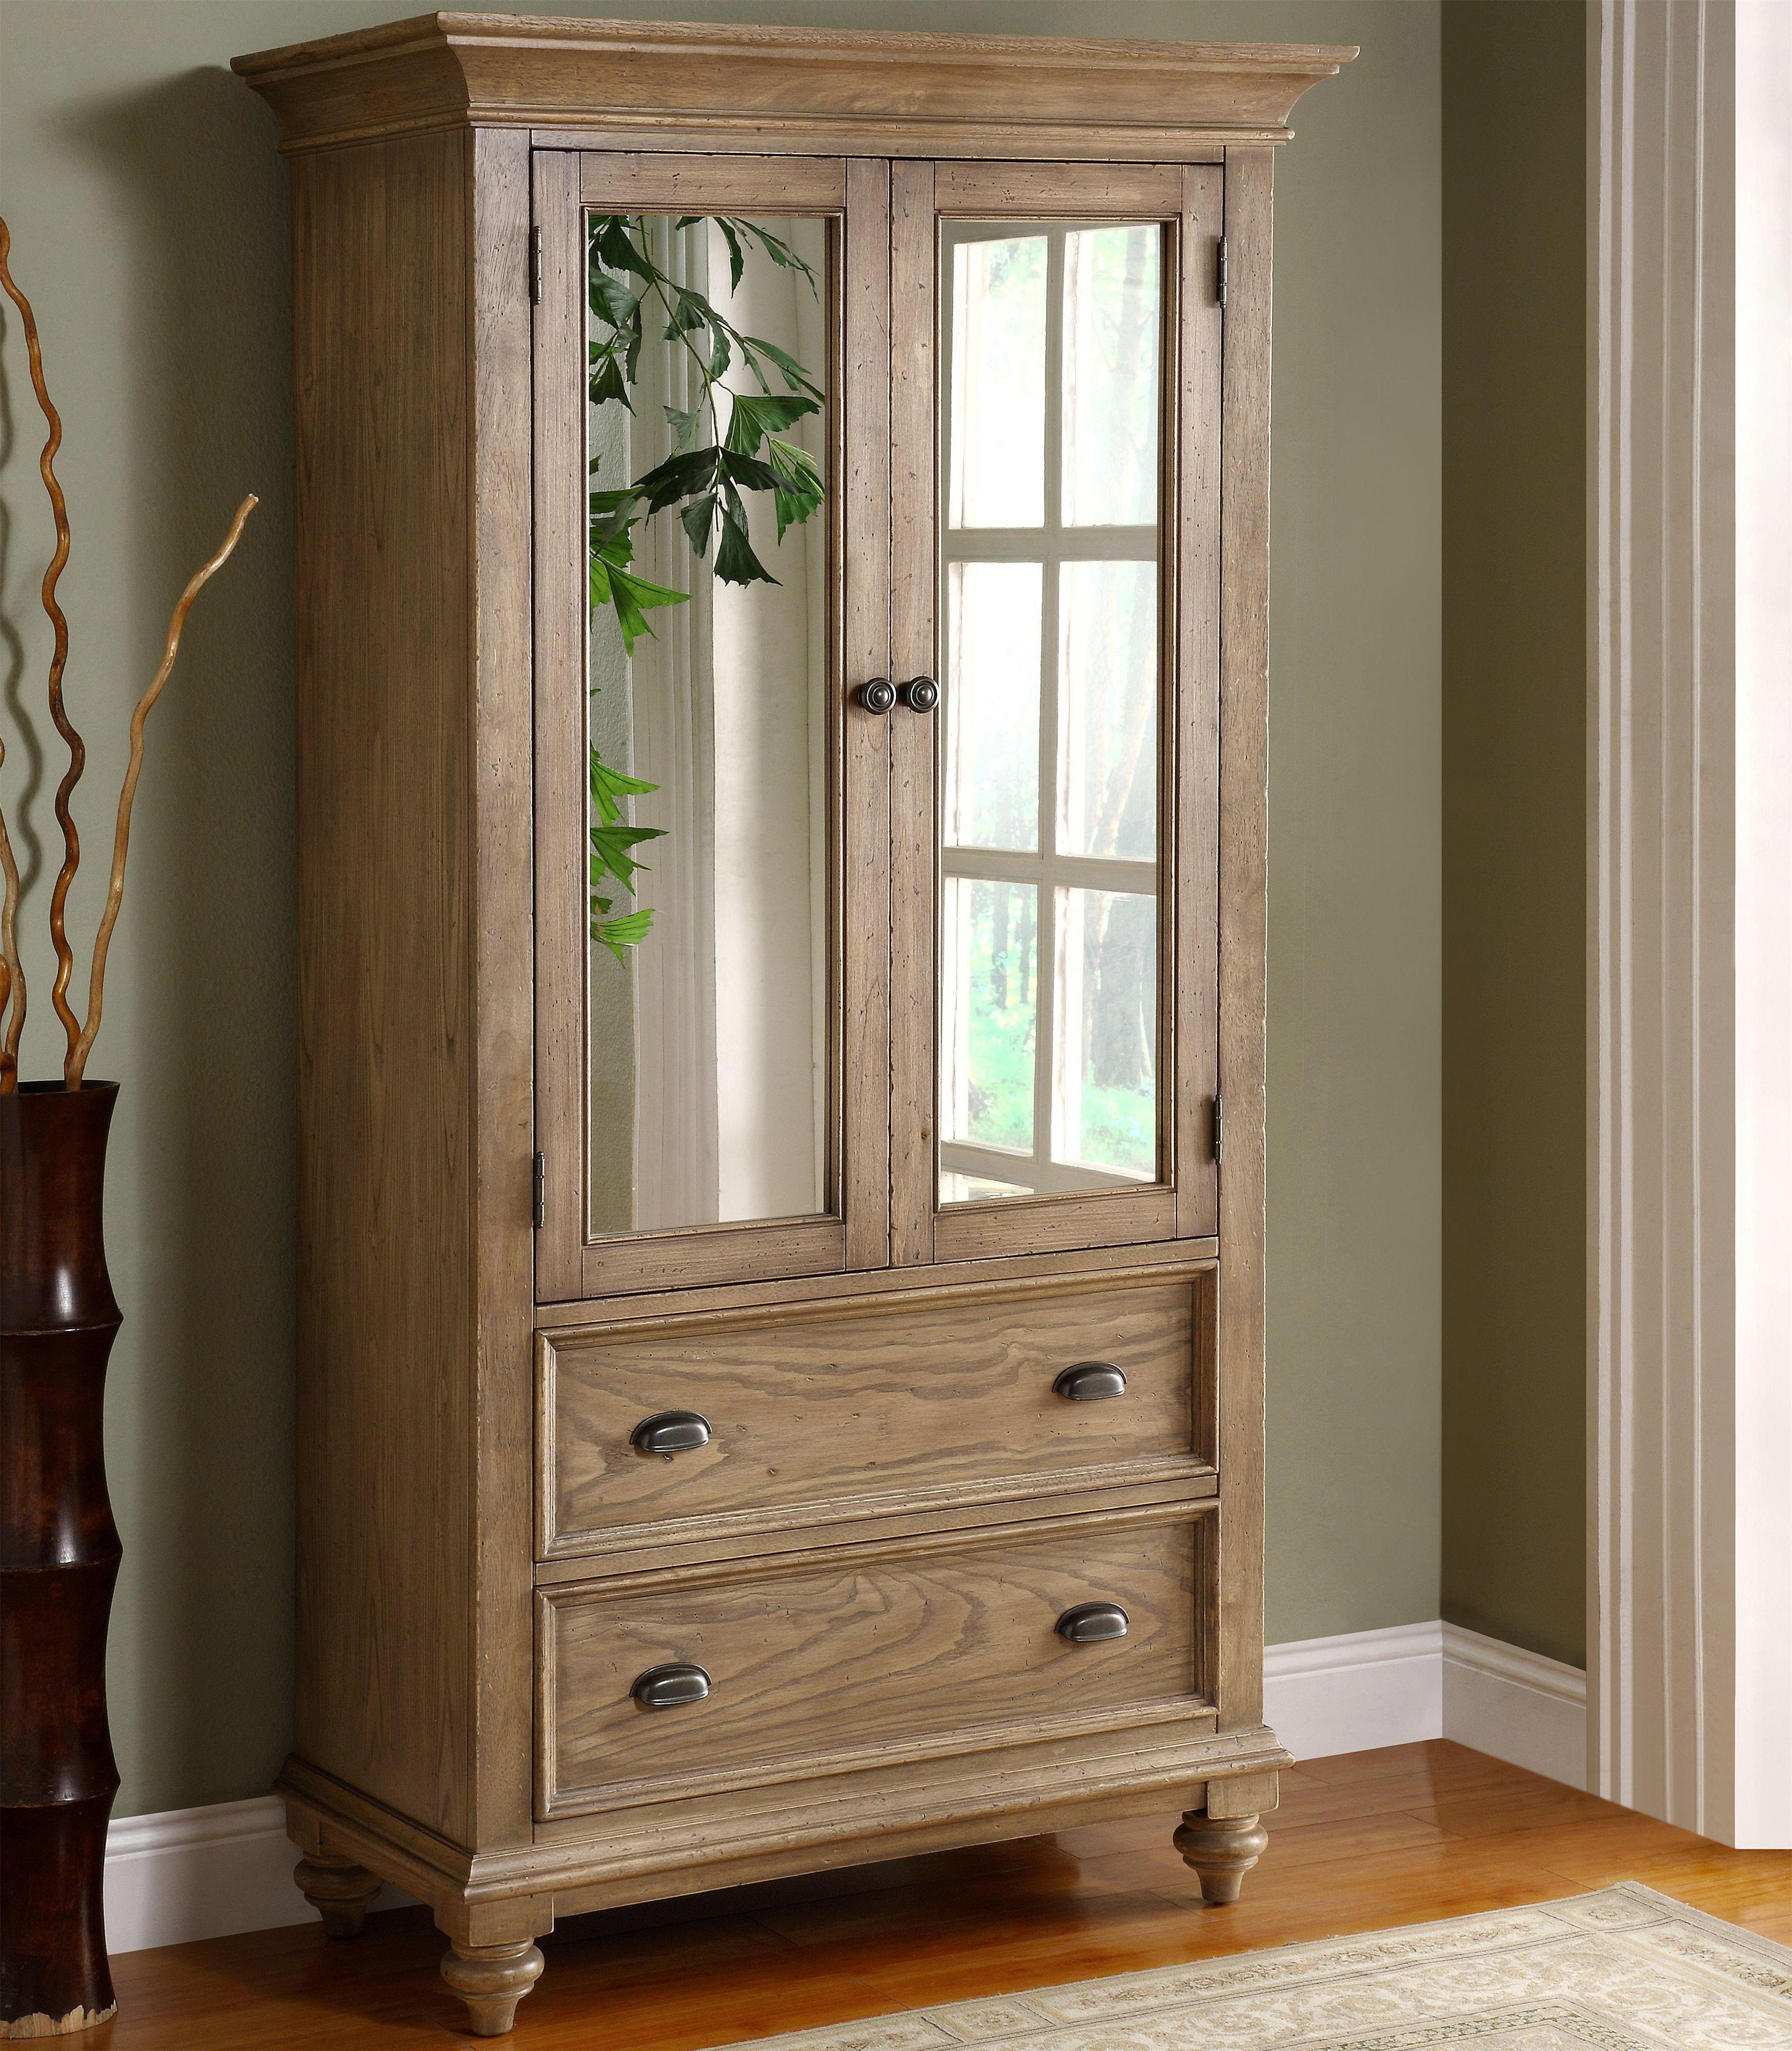 2 door mirror armoire with 5 drawers by riverside. Black Bedroom Furniture Sets. Home Design Ideas